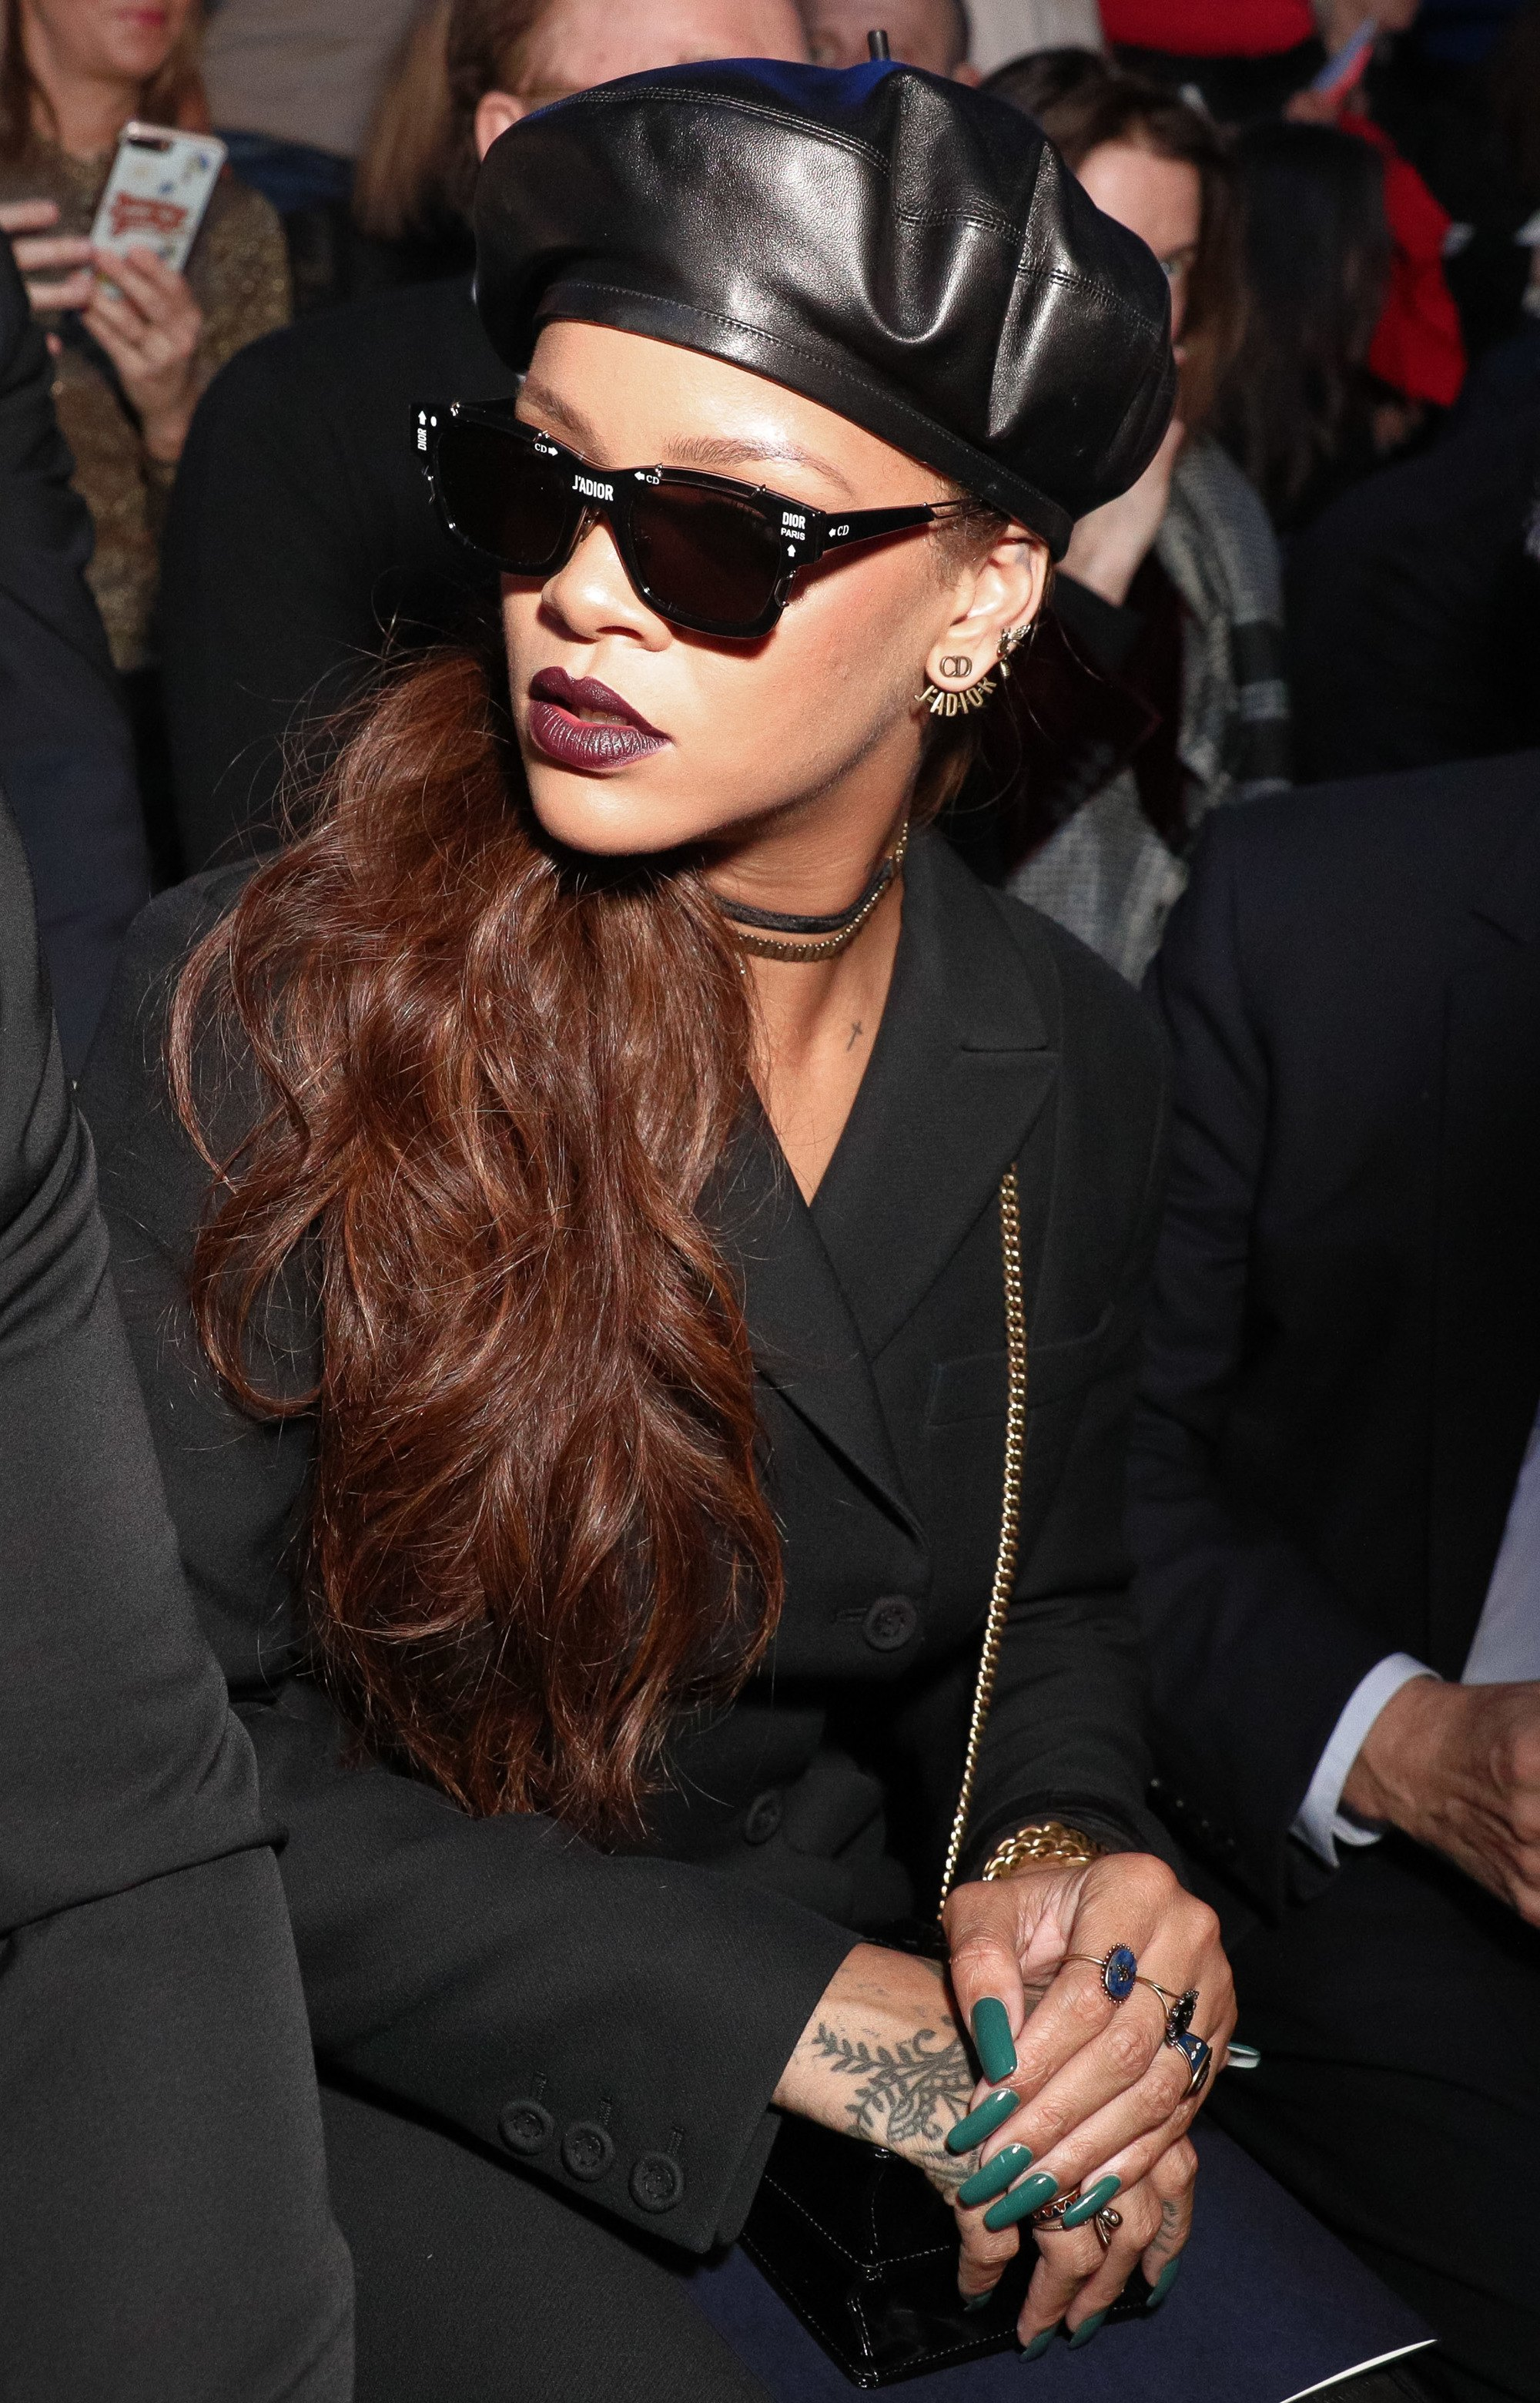 rihanna in the FROW st dior with a beret and side ponytail hairstyle